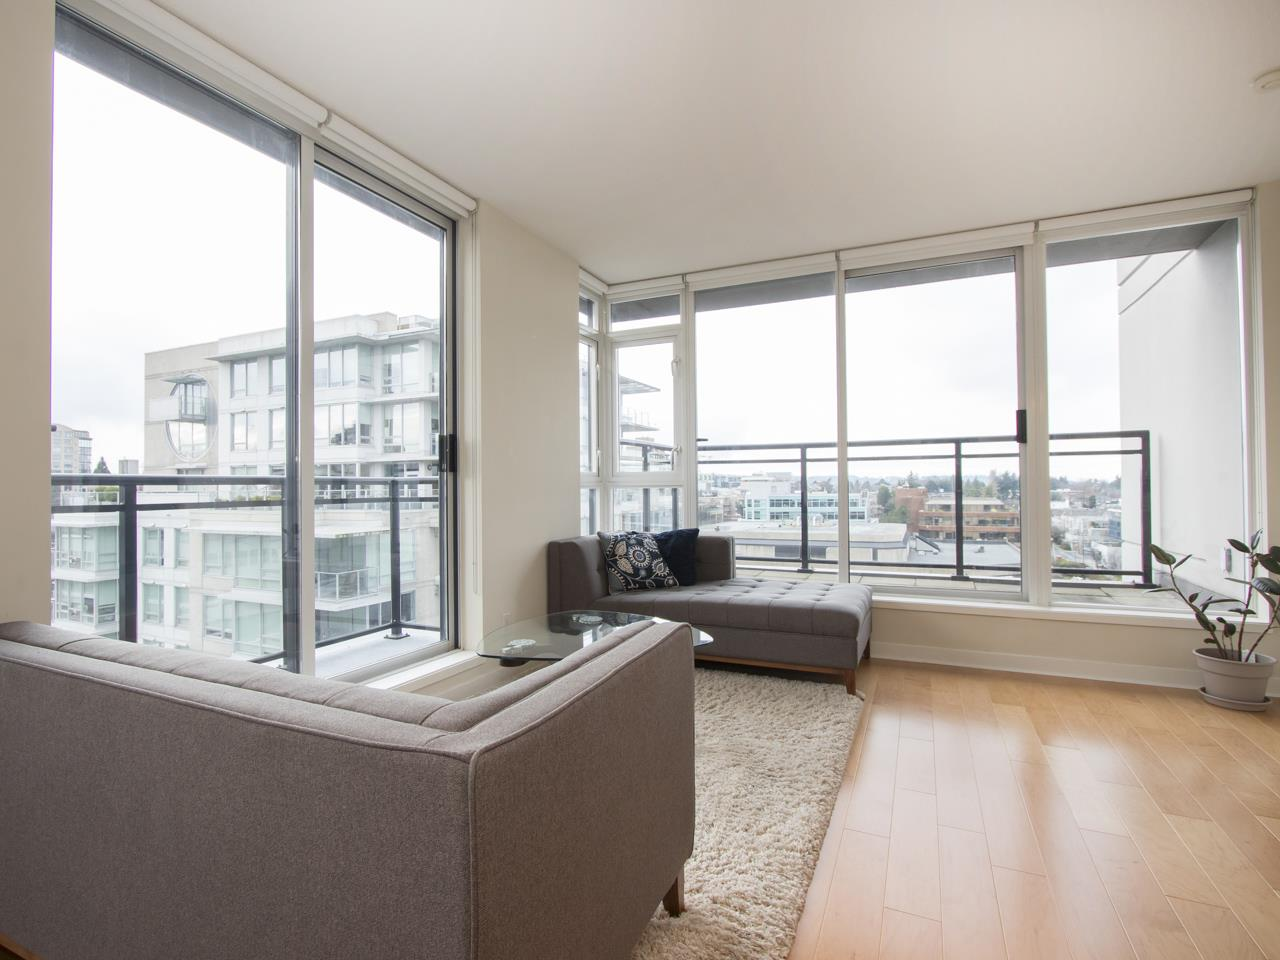 Main Photo: 1002 1650 W 7TH AVENUE in Vancouver: Fairview VW Condo for sale (Vancouver West)  : MLS® # R2022214